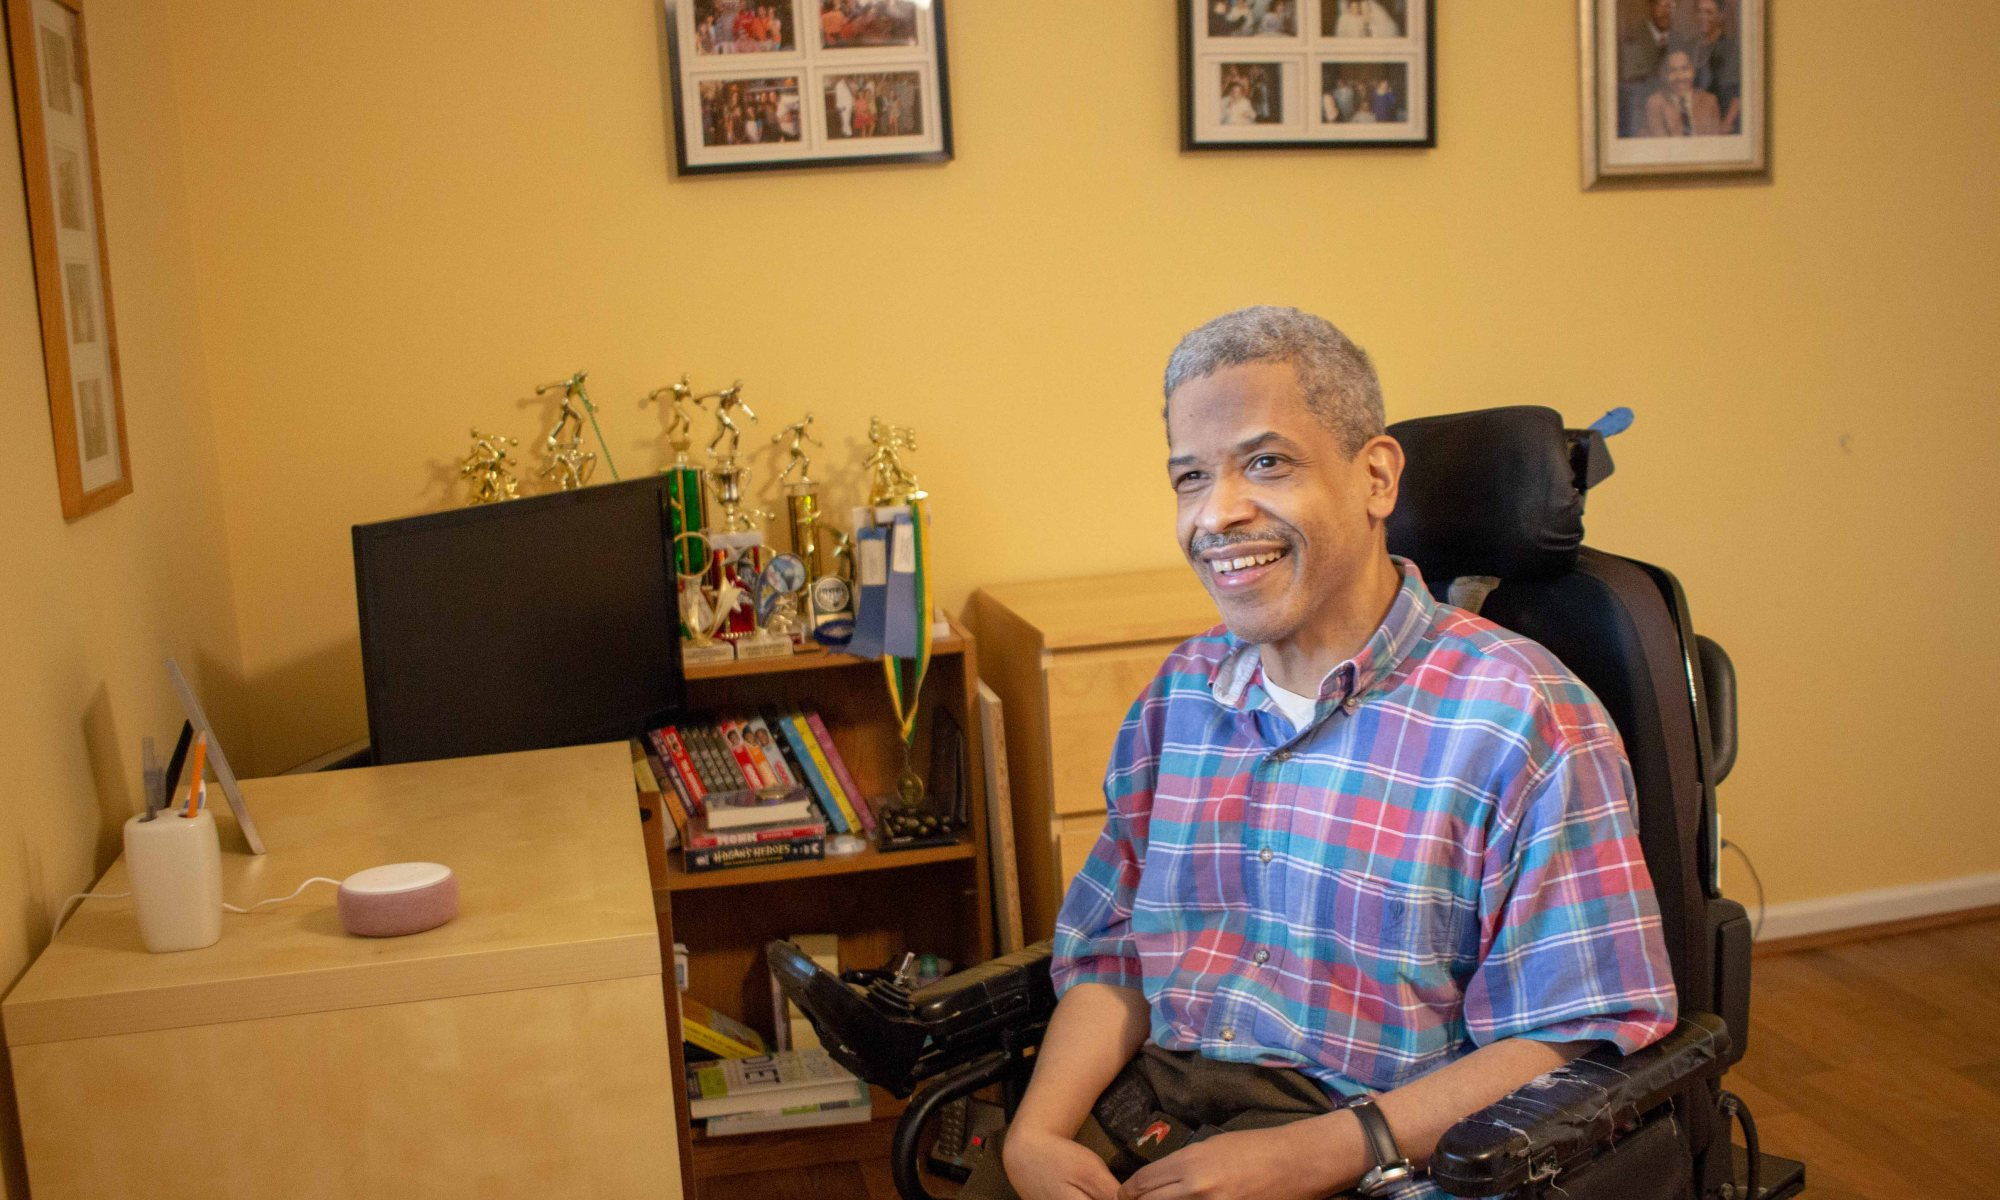 A black man smiles at the camera next to a desk where a smart speaker sits. The man is sitting in a power wheelchair with his hands in his lap. He has a mustache and greying hair, and he is wearing a plaid short-sleeved shirt. Behind him are shelves with a number of trophies and books and images of family and friends hang on the wall.